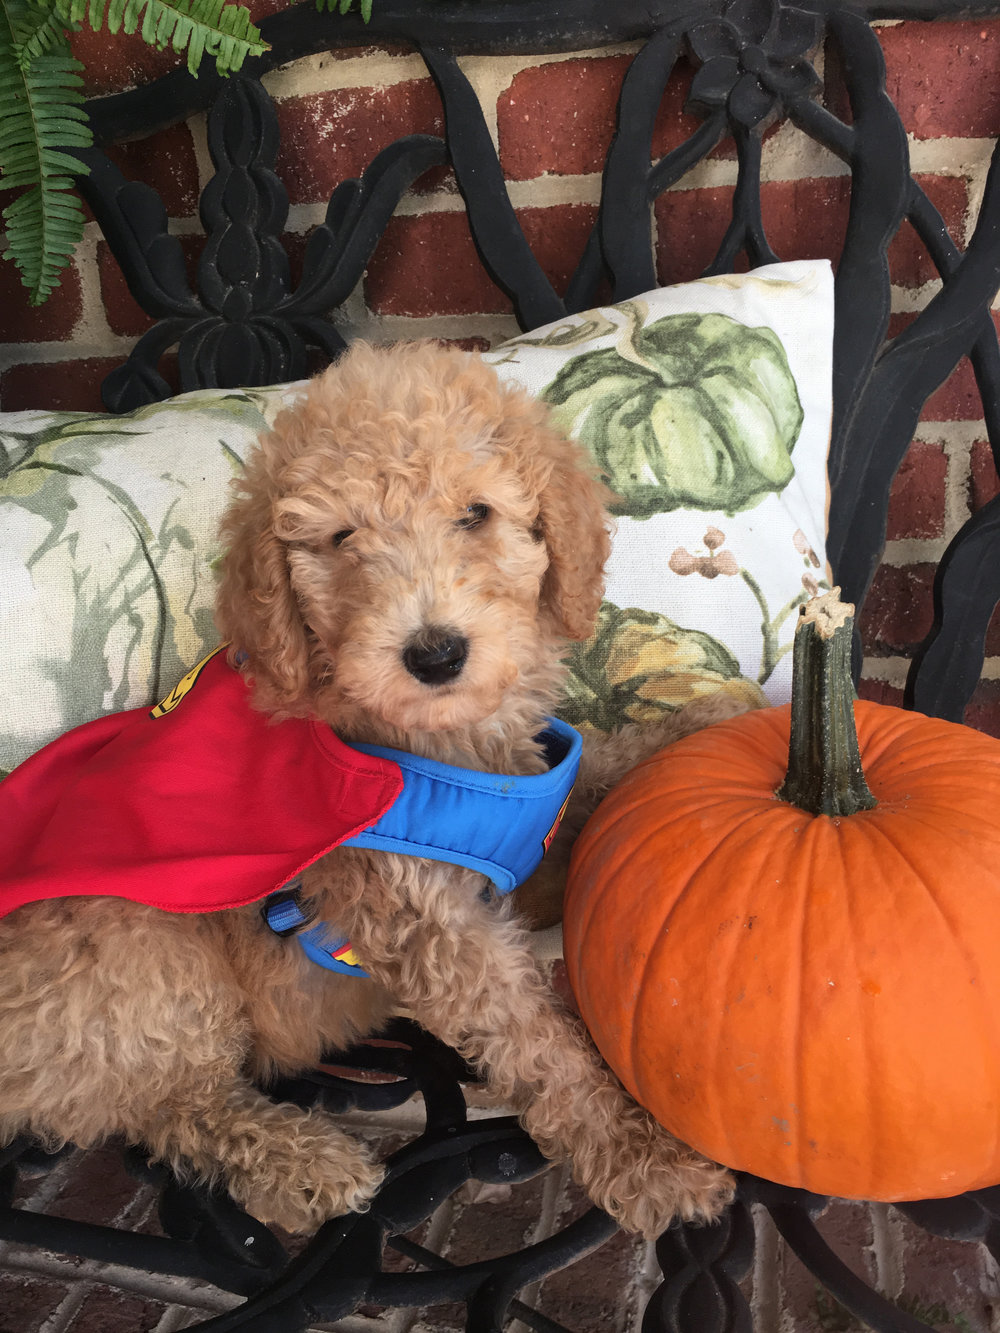 superman-mini-Goldendoodle.jpg